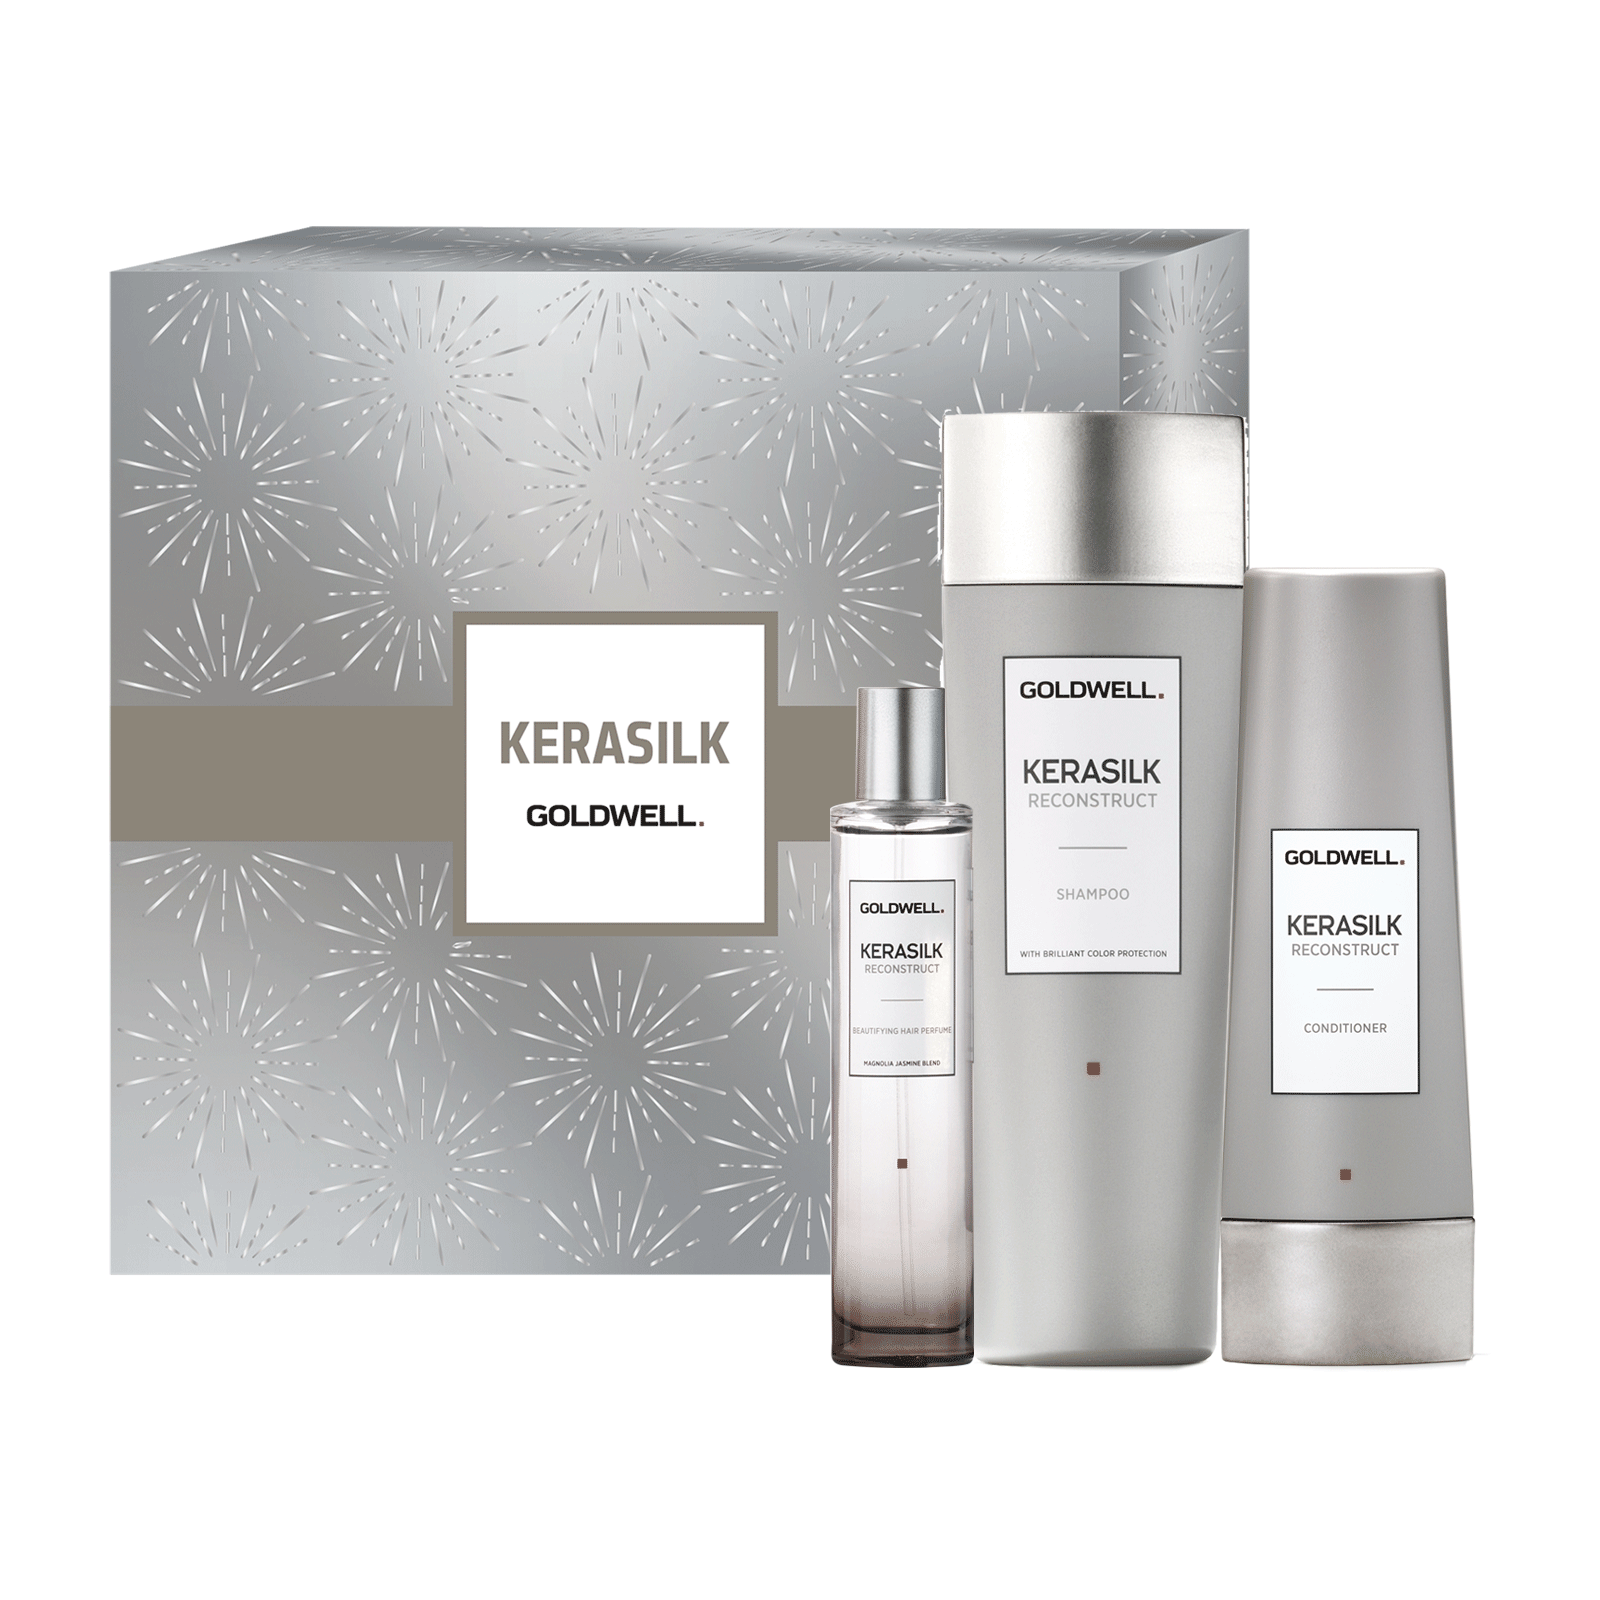 Kerasilk Reconstruct Holiday Set